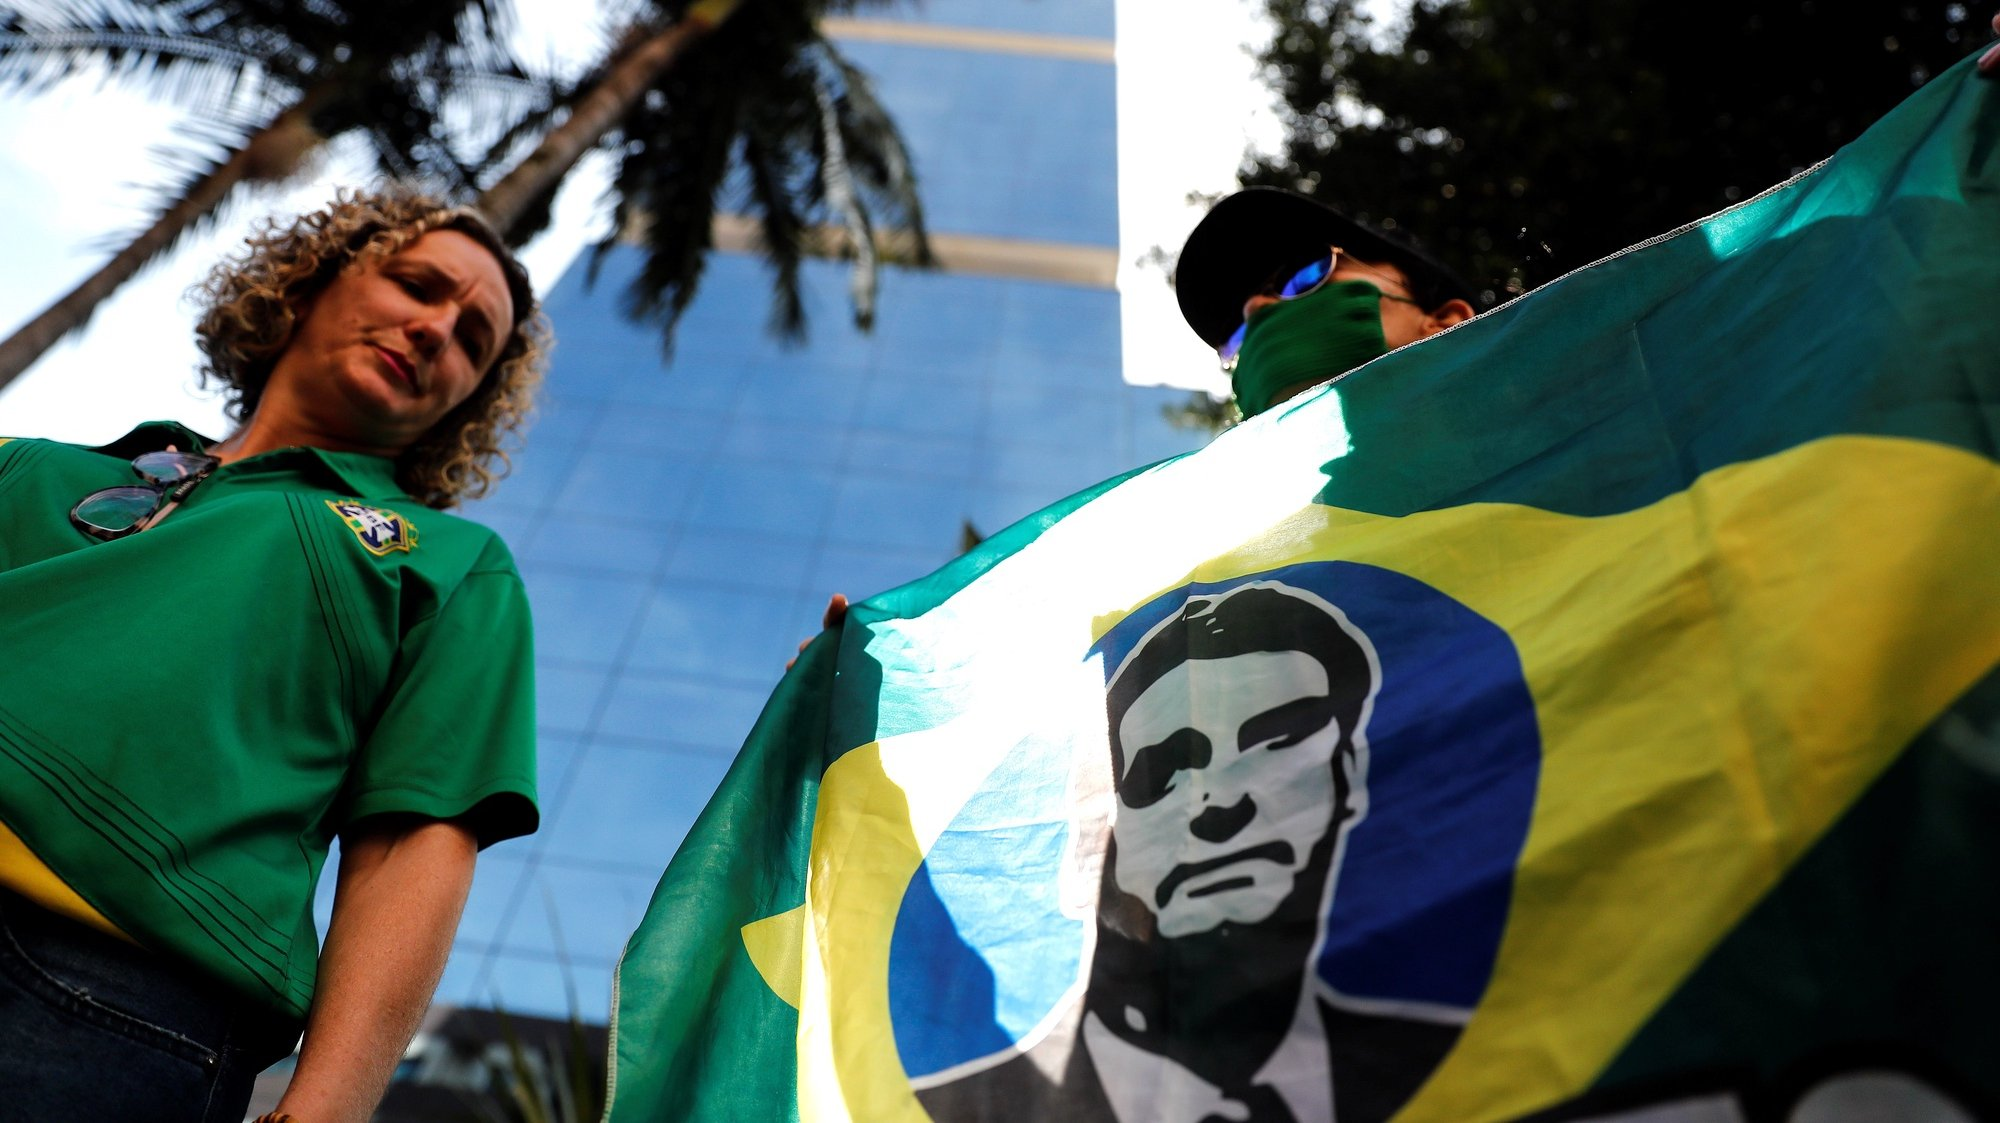 epa09346764 Groups of supporters of the President of Brazil Jair Bolsonaro carry out an act of support in front of the Vila Nova Star hospital, in Sao Paulo, Brazil, 15 July 2021. Bolsonaro 'evolves' favorably after undergoing a treatment to unblock his intestine and, if he continues like this, he will not need to undergo surgery, his son Senator Flavio Bolsonaro reported on 15 July.  EPA/Sebastiao Moreira